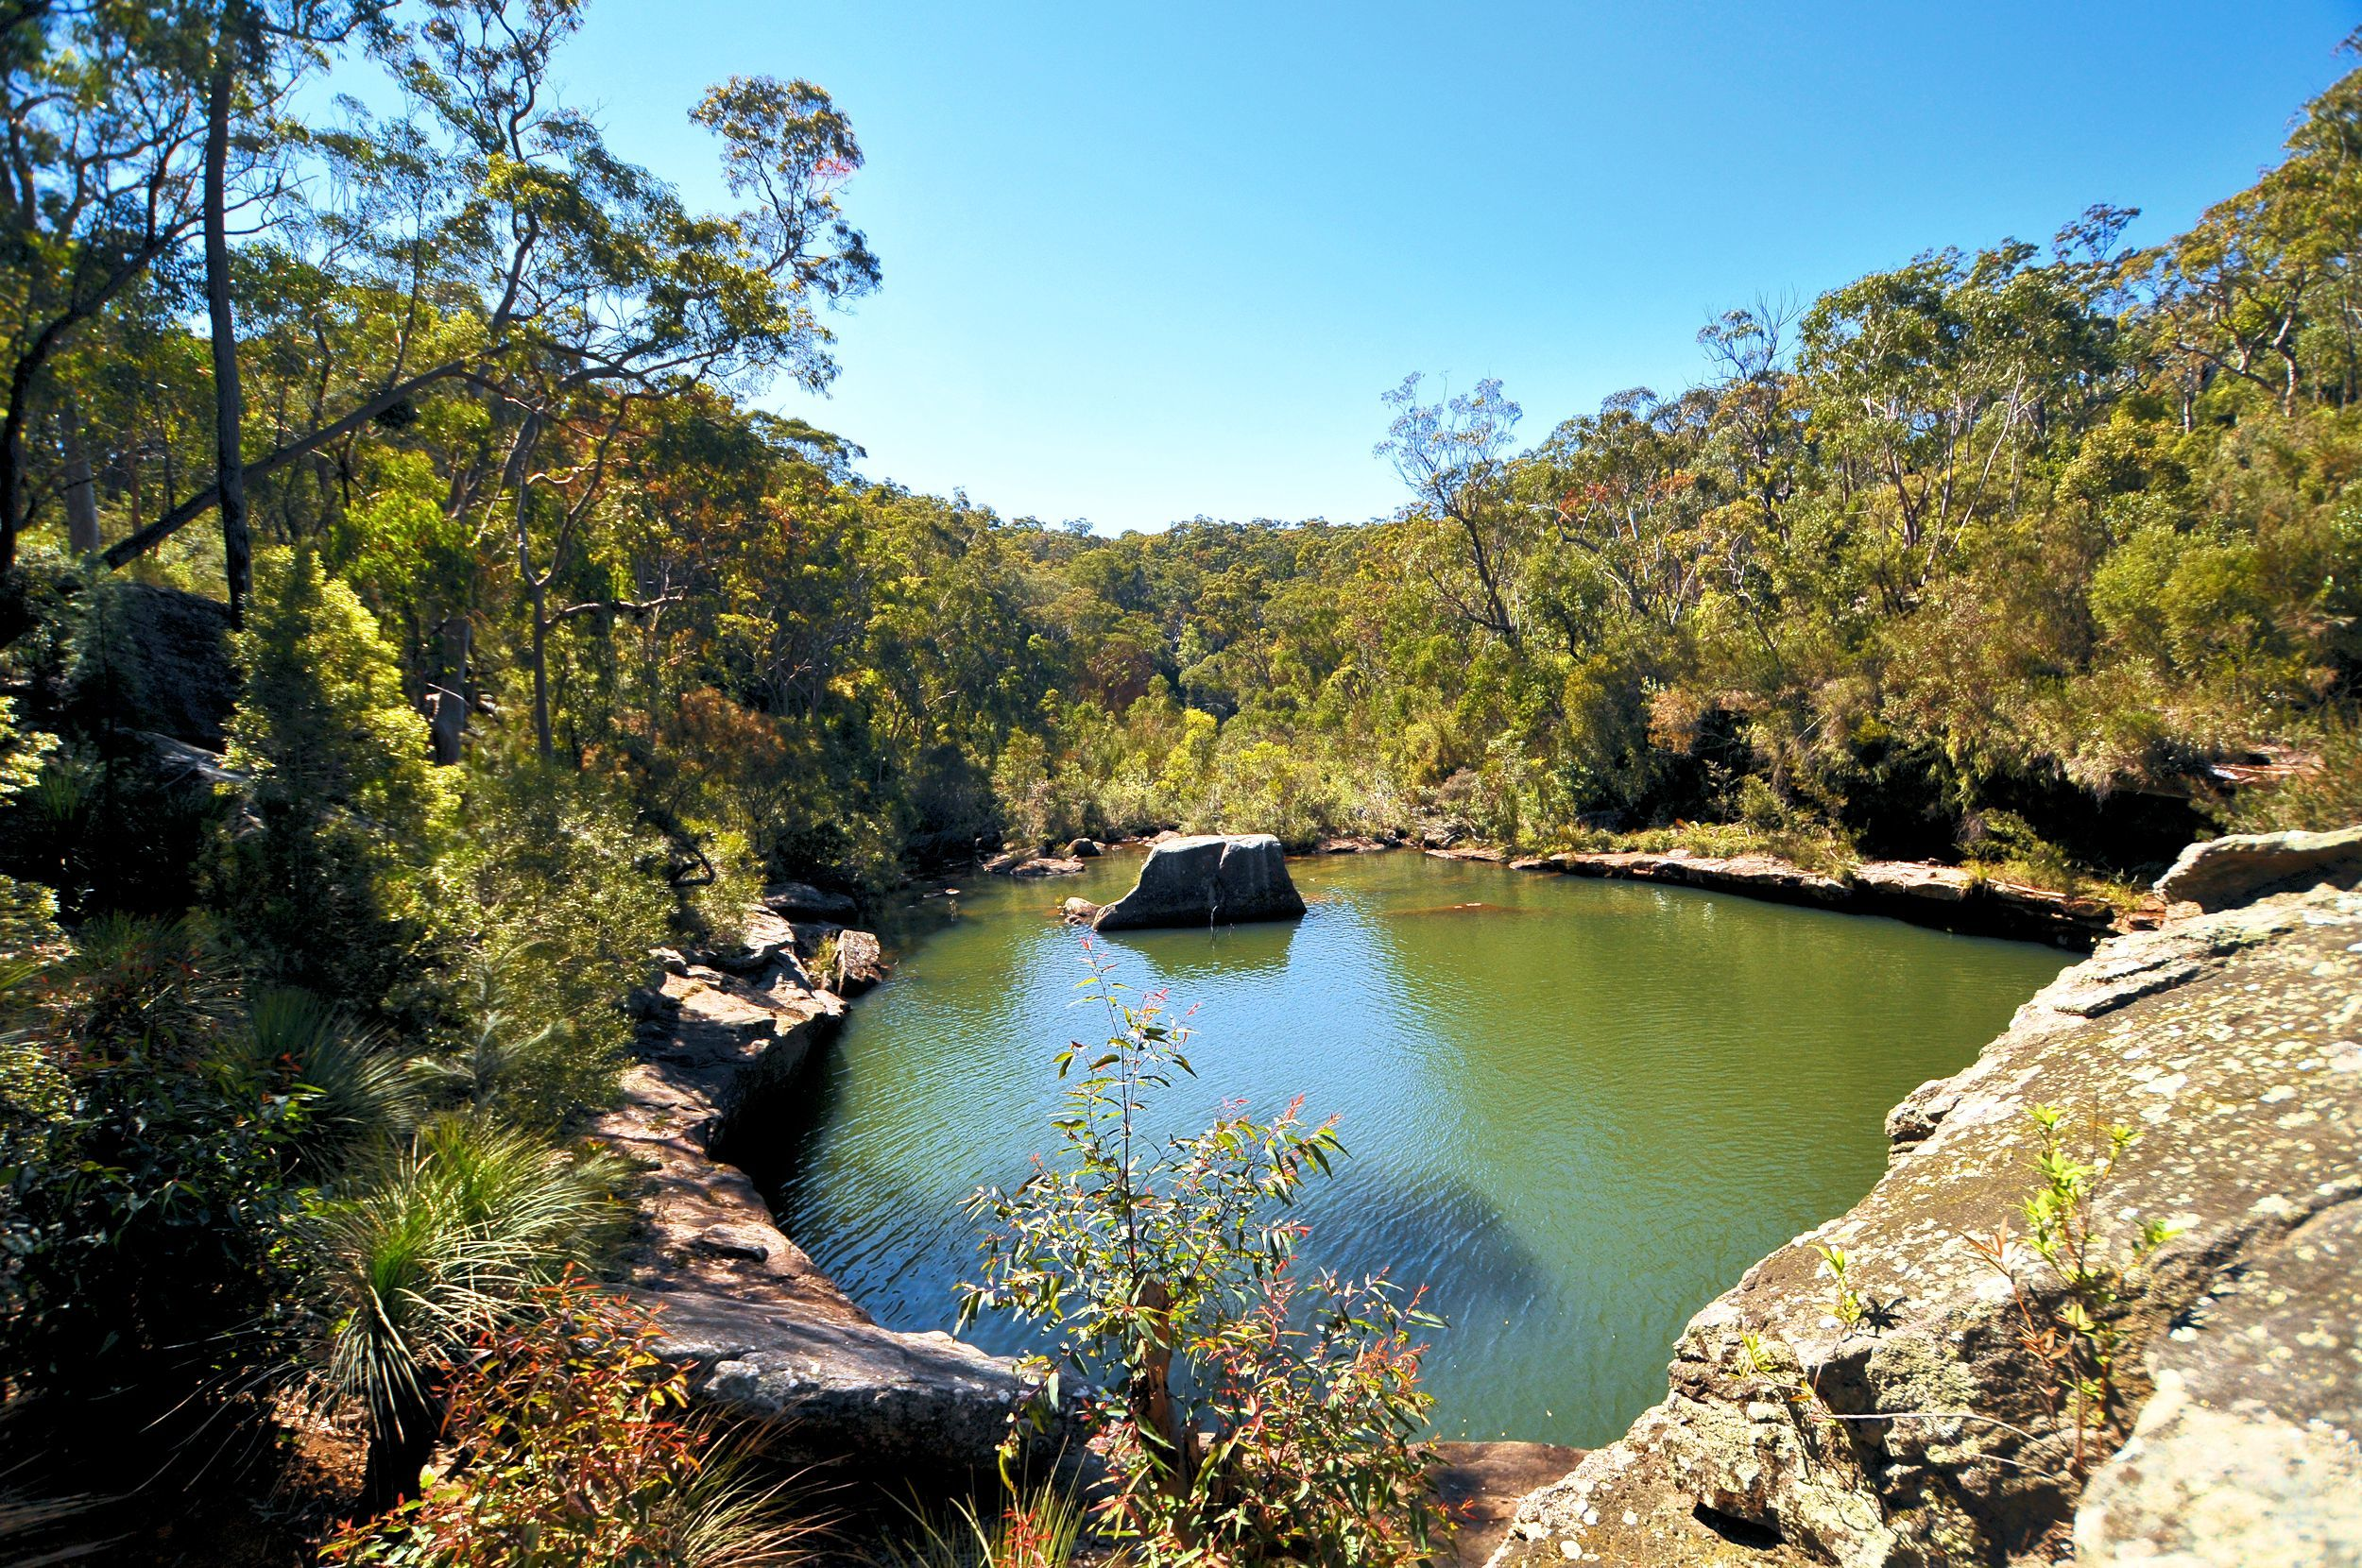 Minerva Pool in Dharawal National Park